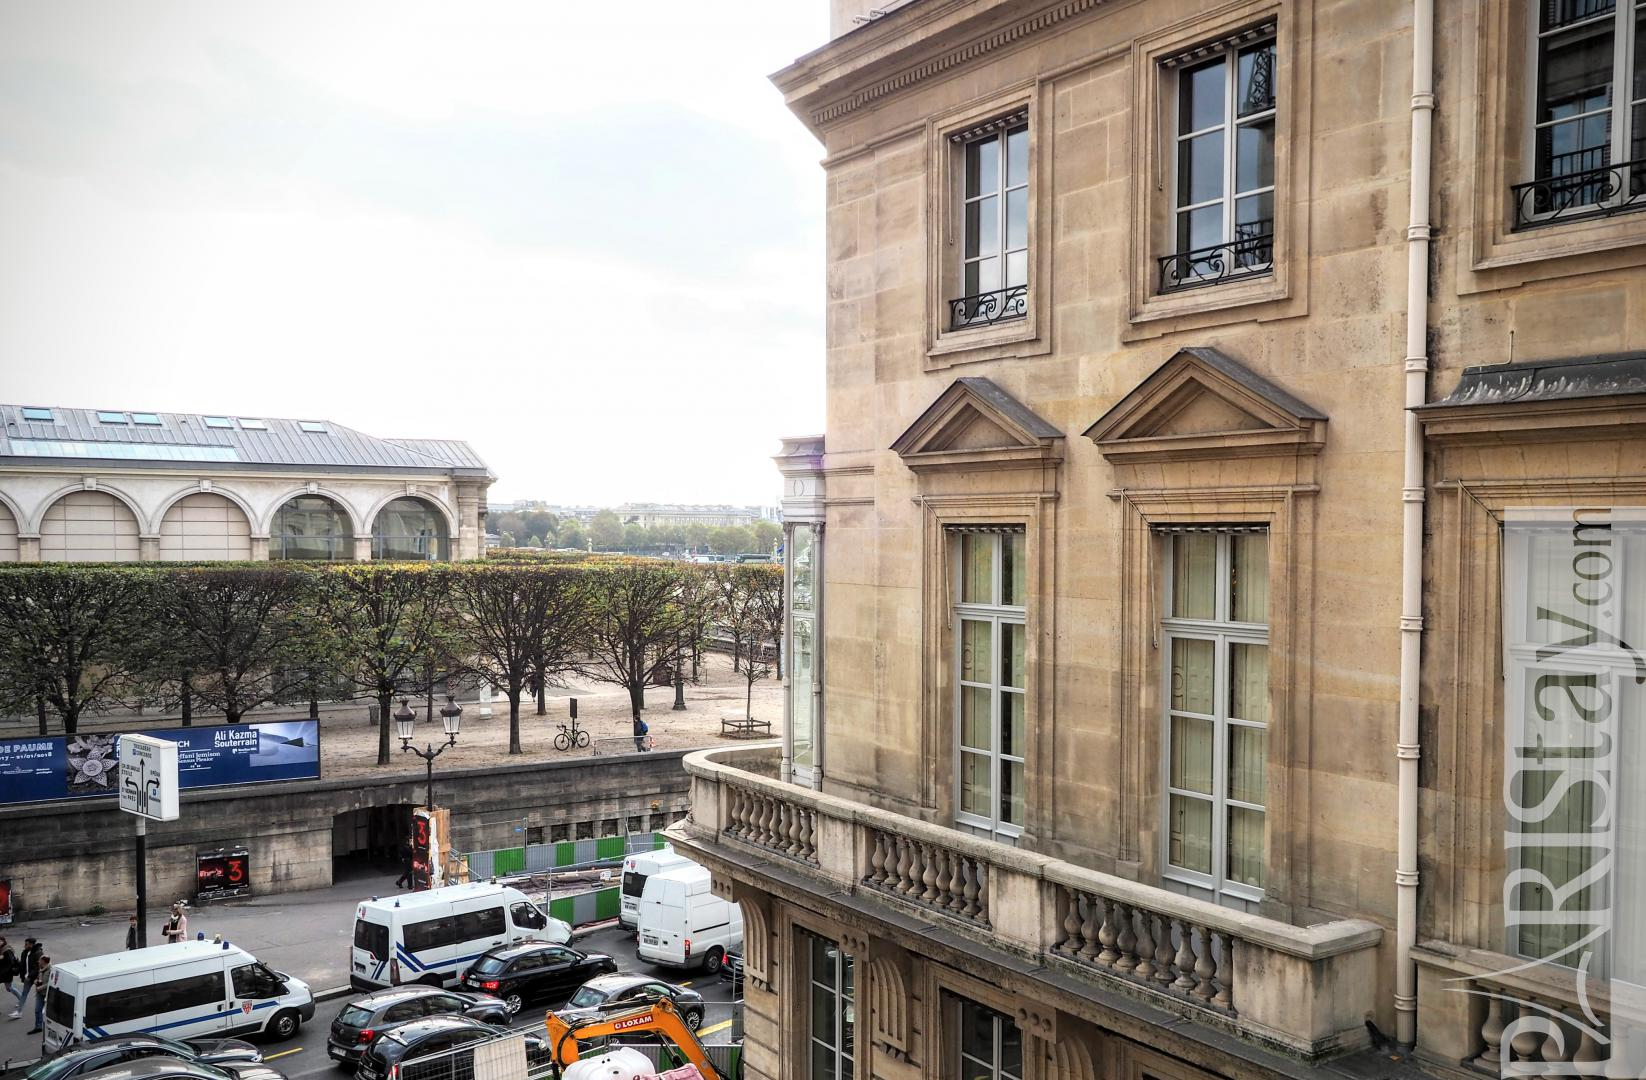 Apartment for rent paris france furnished 2 bedrooms flat ...